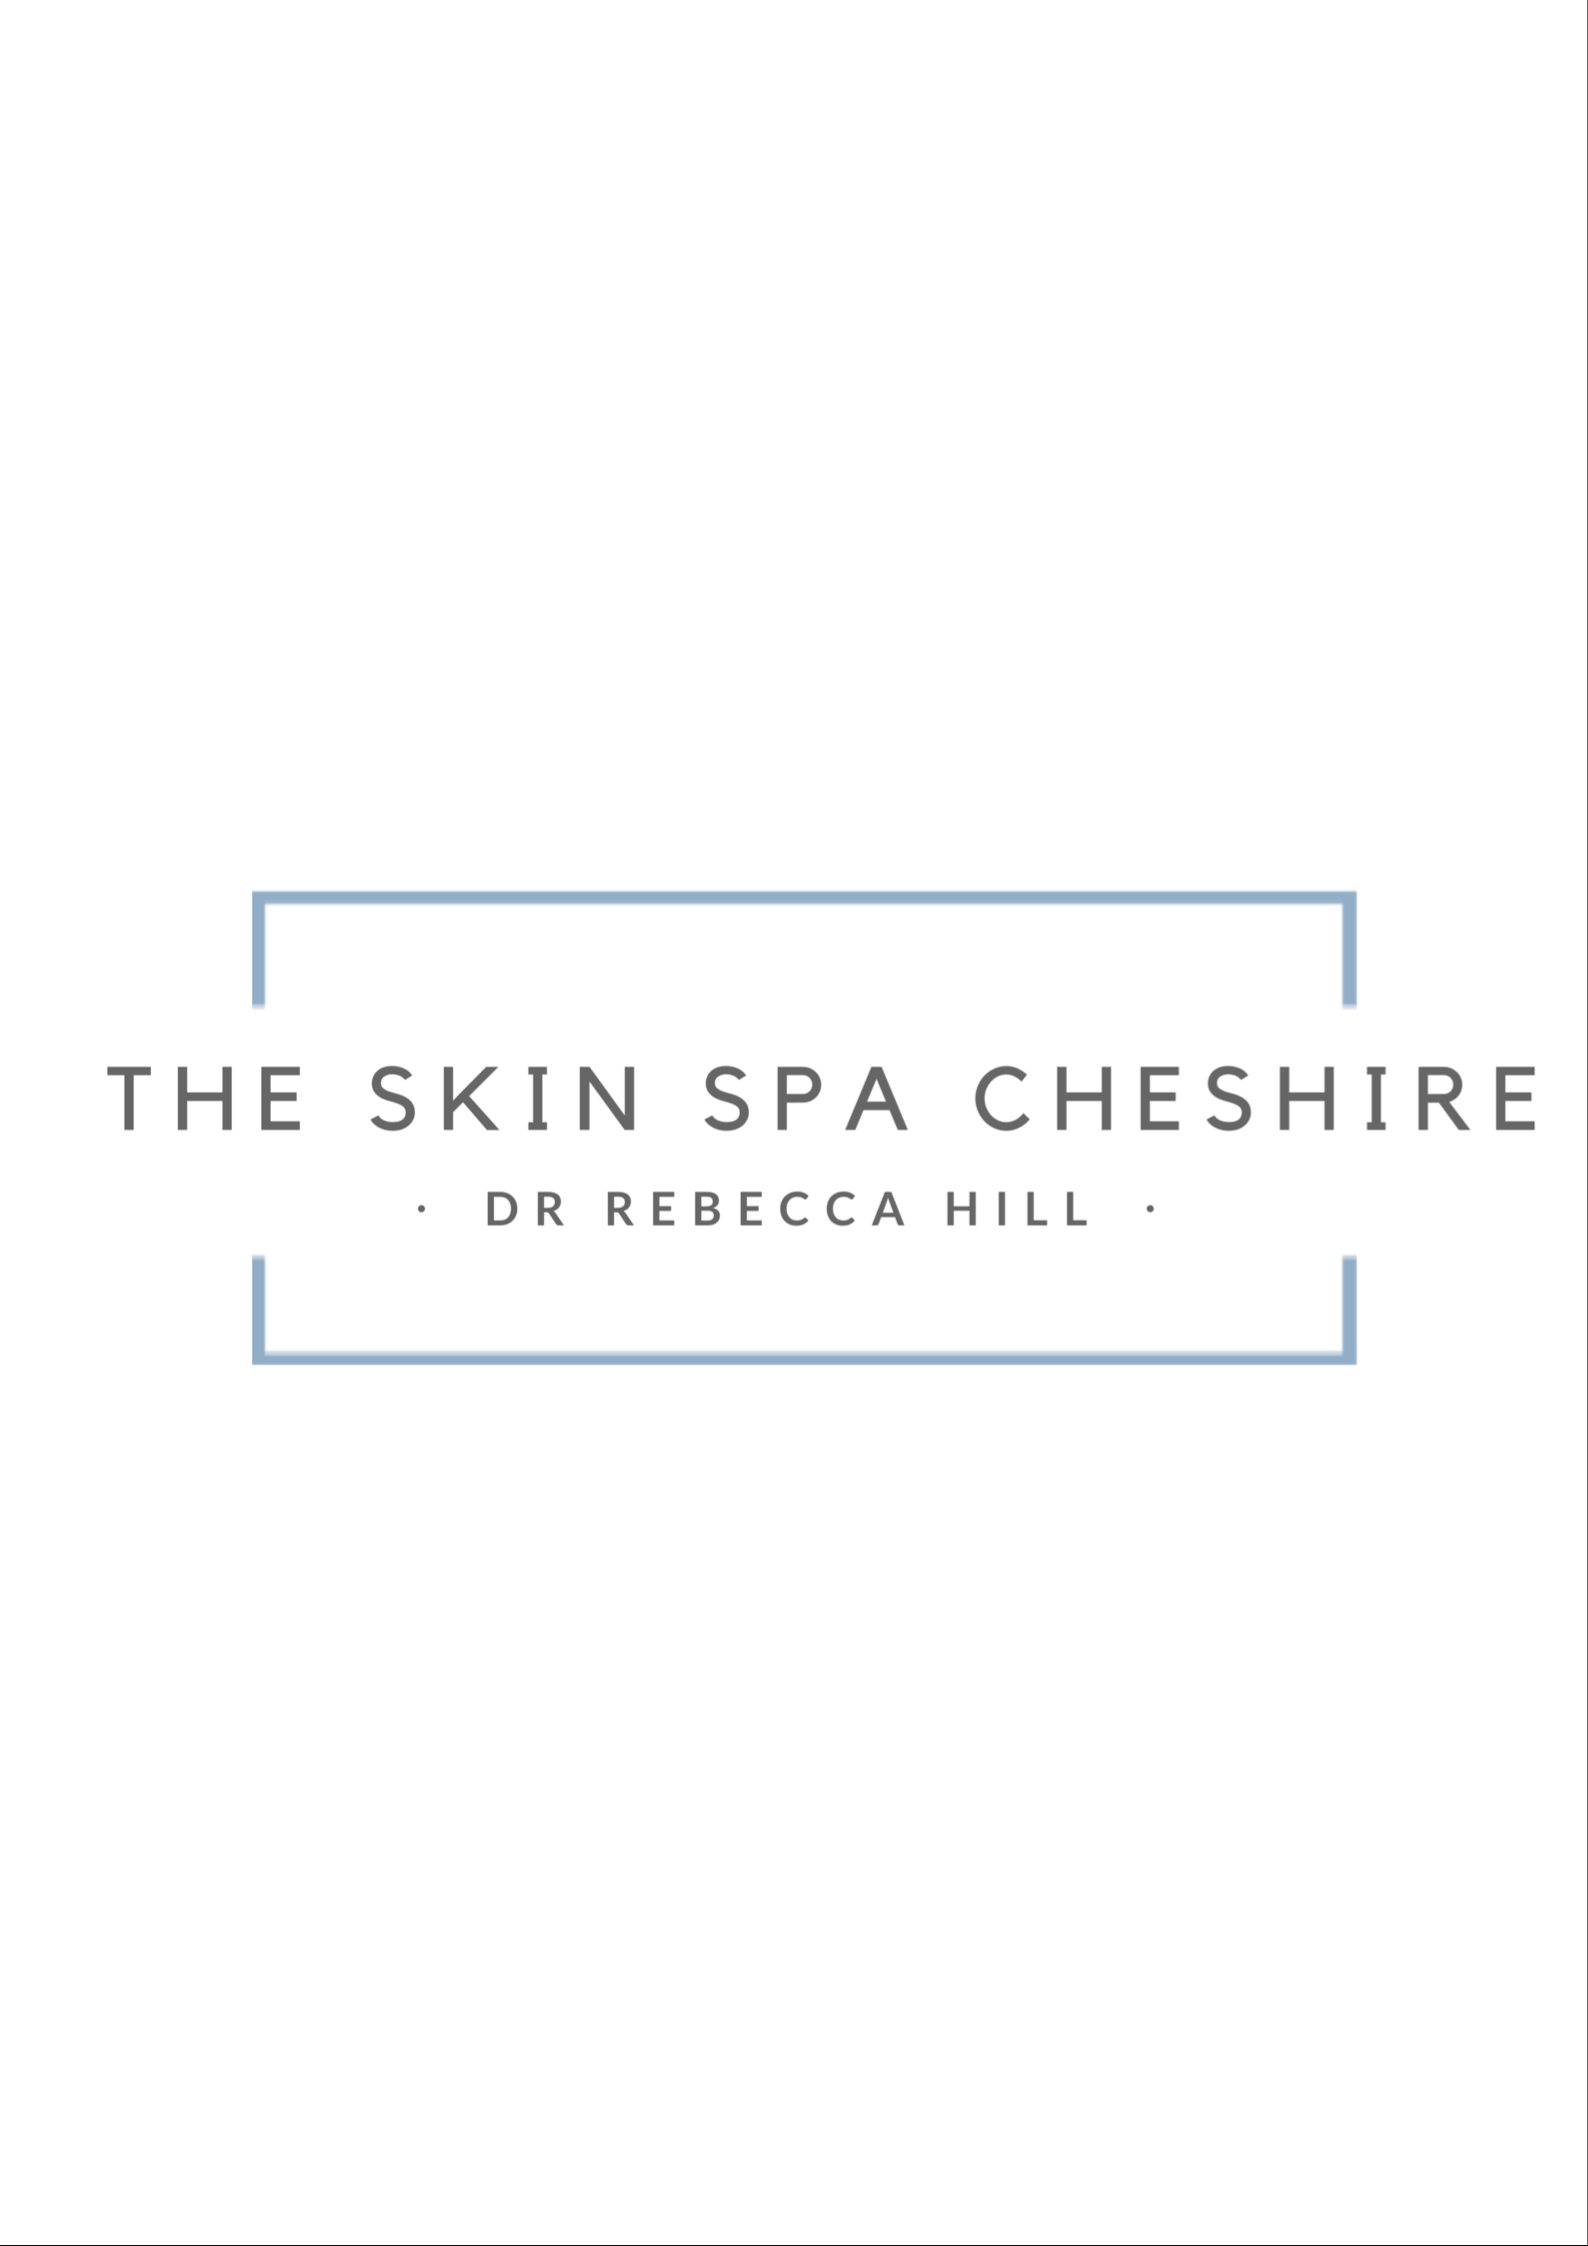 thumbnail_Copy of the Skin spa cheshire.